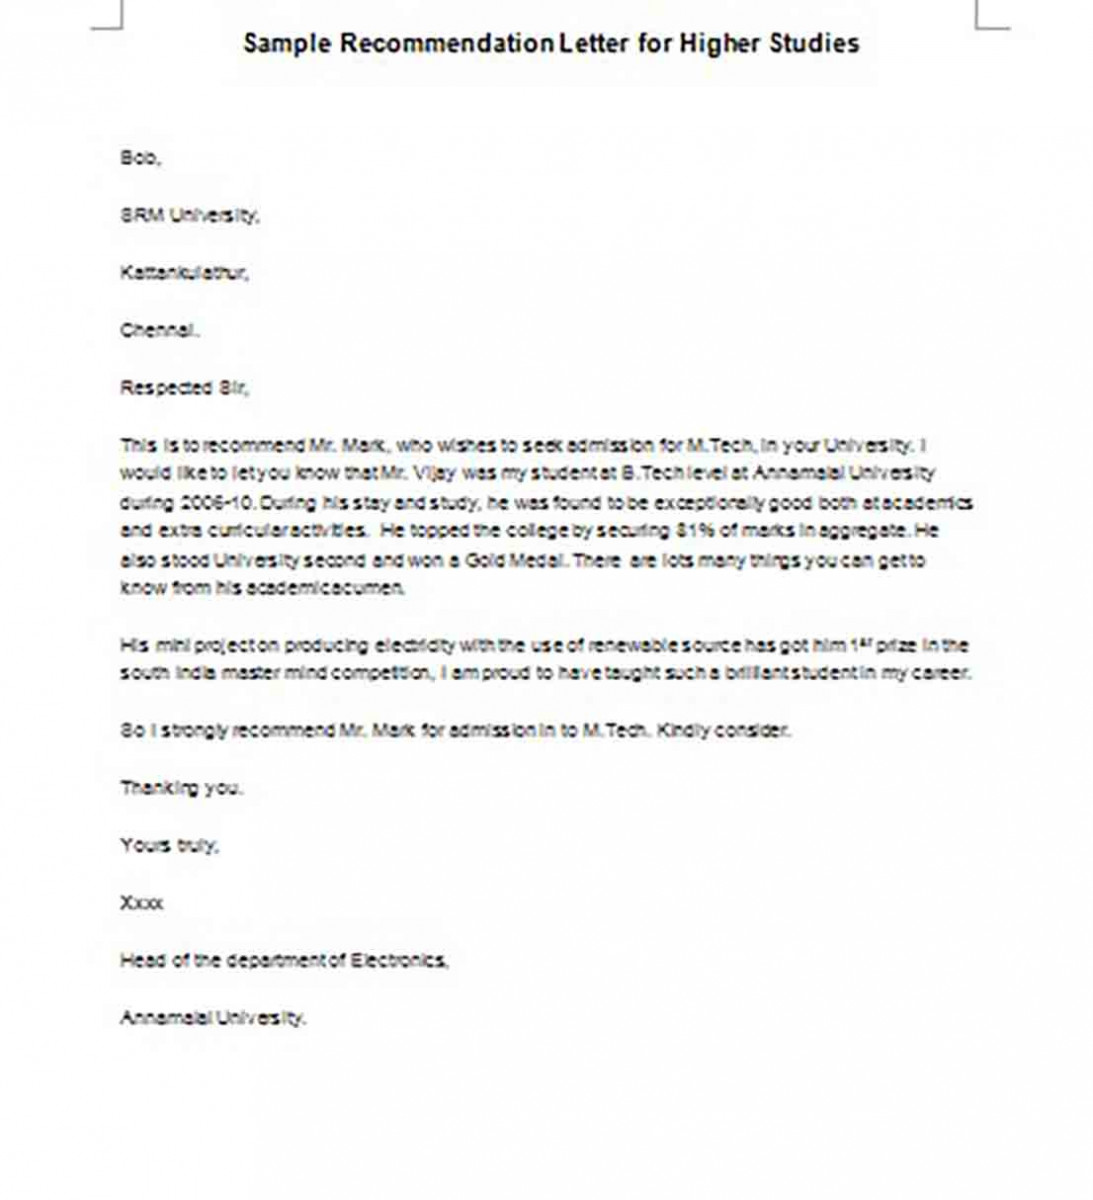 Recommendation Letter for Higher Studies Word Format